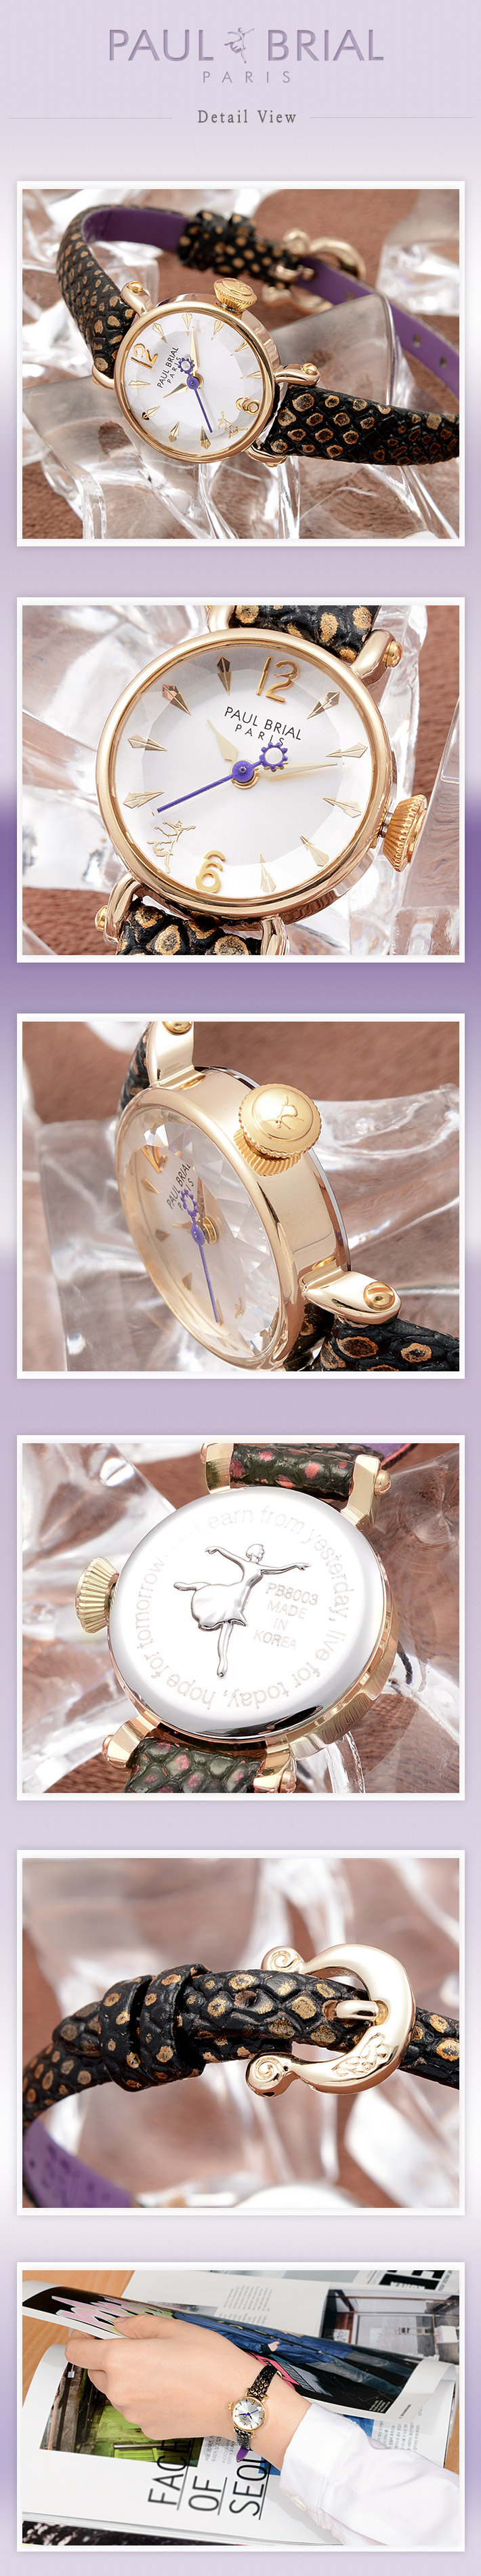 [ PAUL BRIAL ] KOREA MADE HIGH QUALITY LADIES GOLD BLACK LEATHER BAND WATCH PB8003GDGBK TOULOUSE